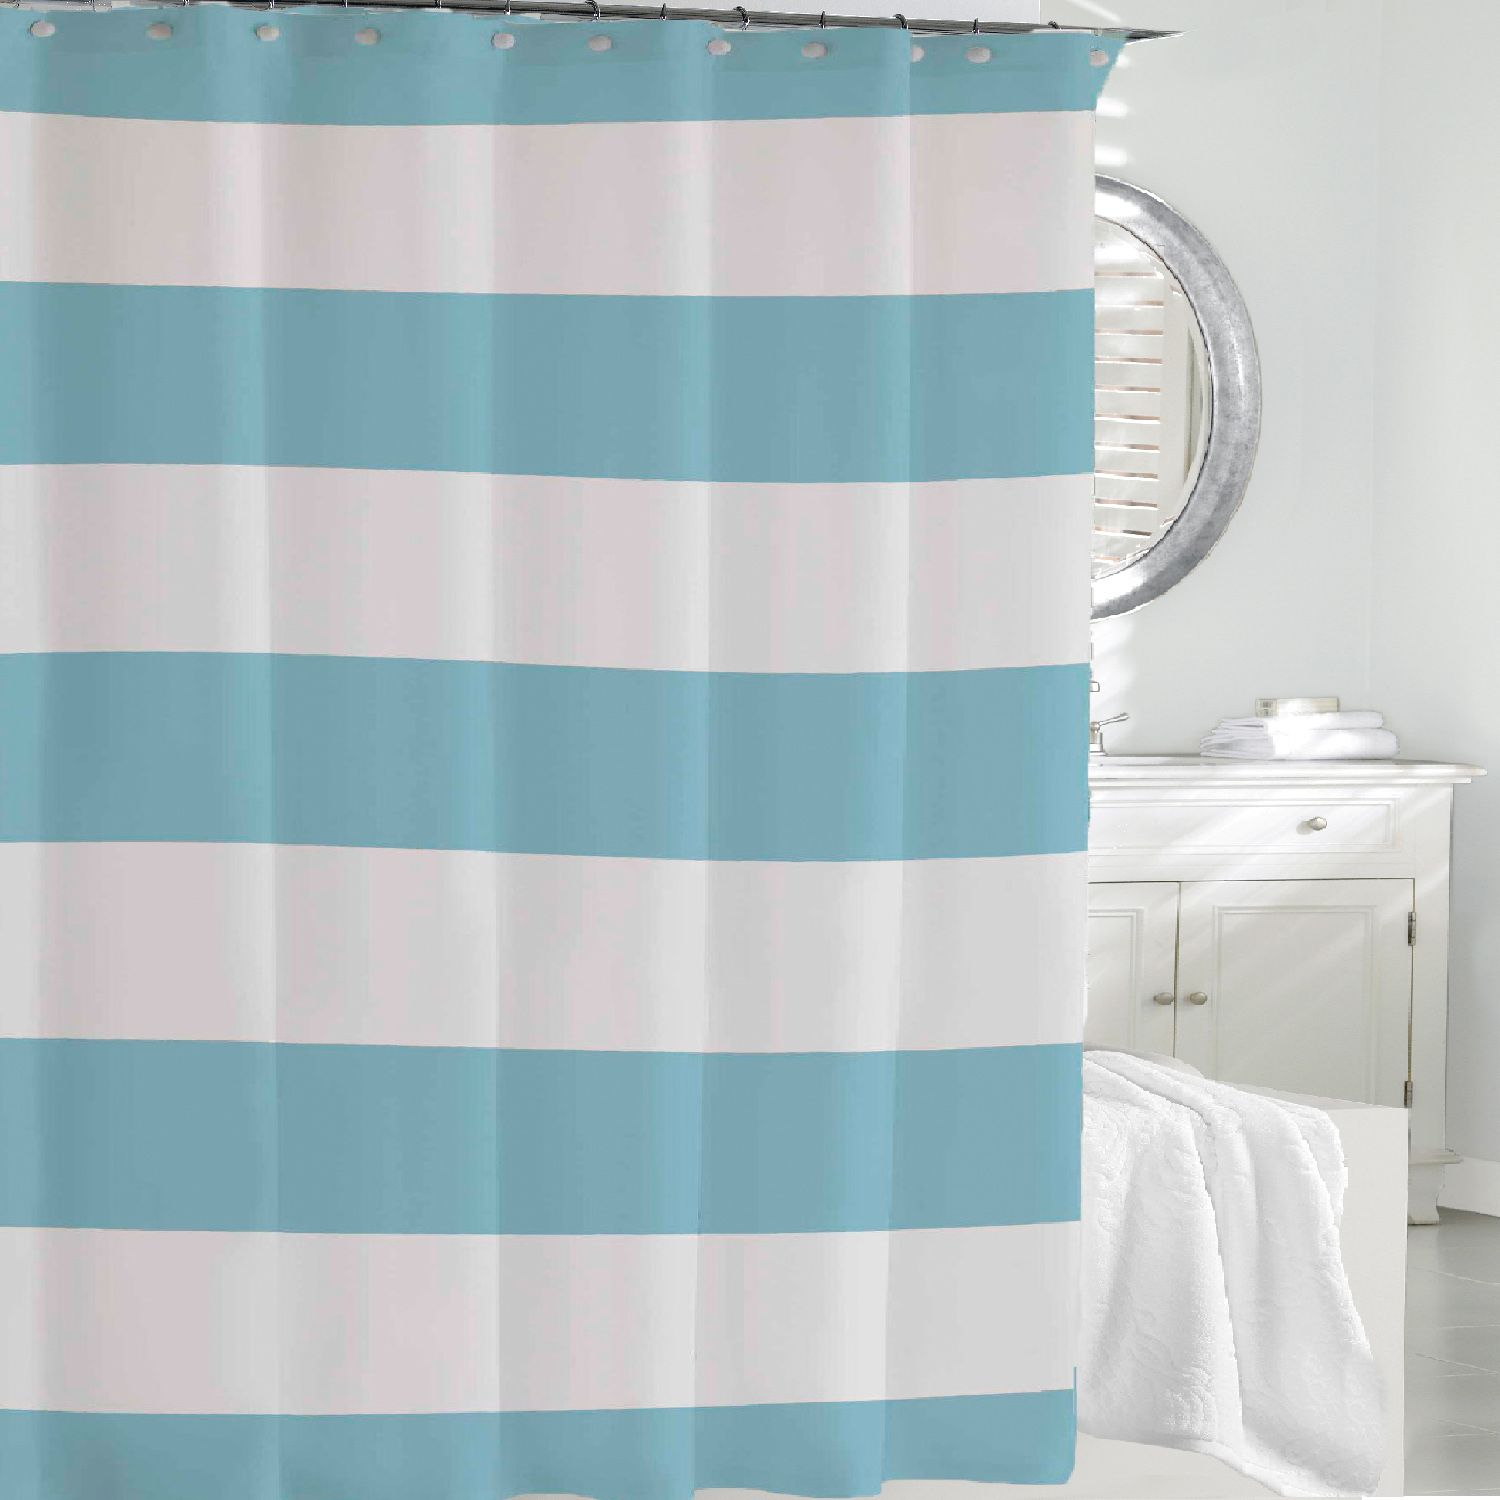 kassatex hampton stripe fabric shower curtain - Kassatex